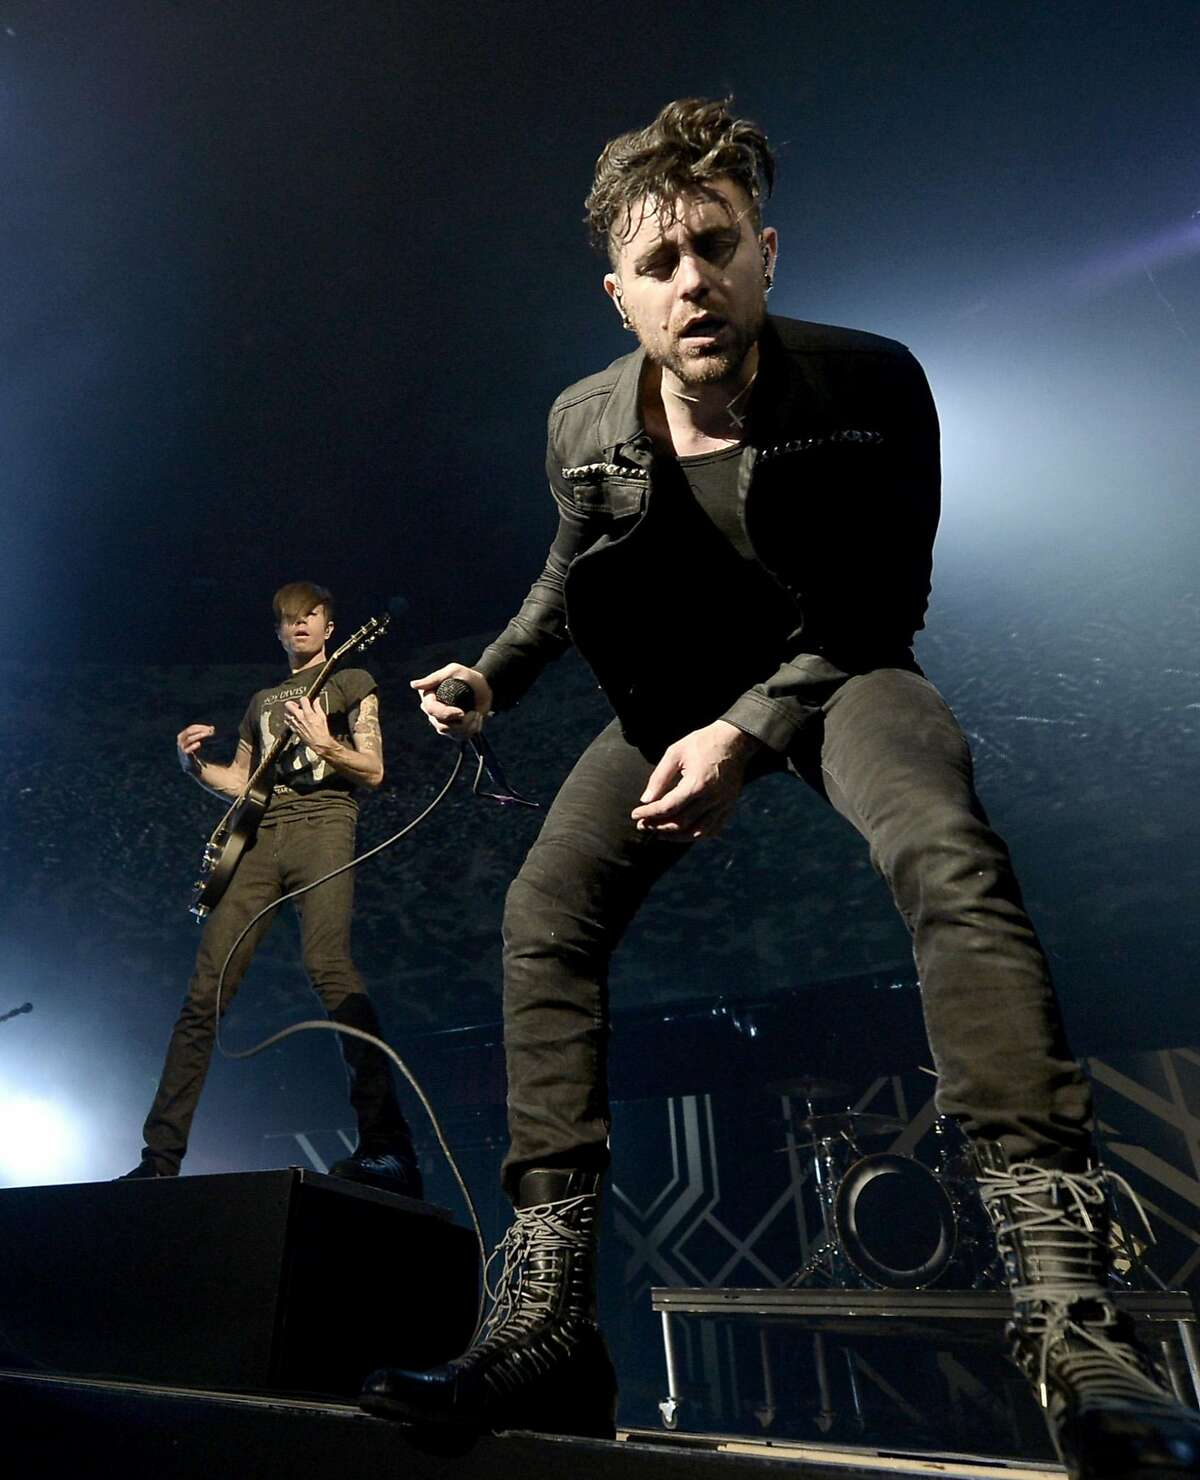 Musicians Jade Puget (L) and Davey Havok of AFI perform onstage during The 24th Annual KROQ Almost Acoustic Christmas at The Shrine Auditorium on December 7, 2013 in Los Angeles, California. (Photo by Kevin Winter/Getty Images for Radio.com)